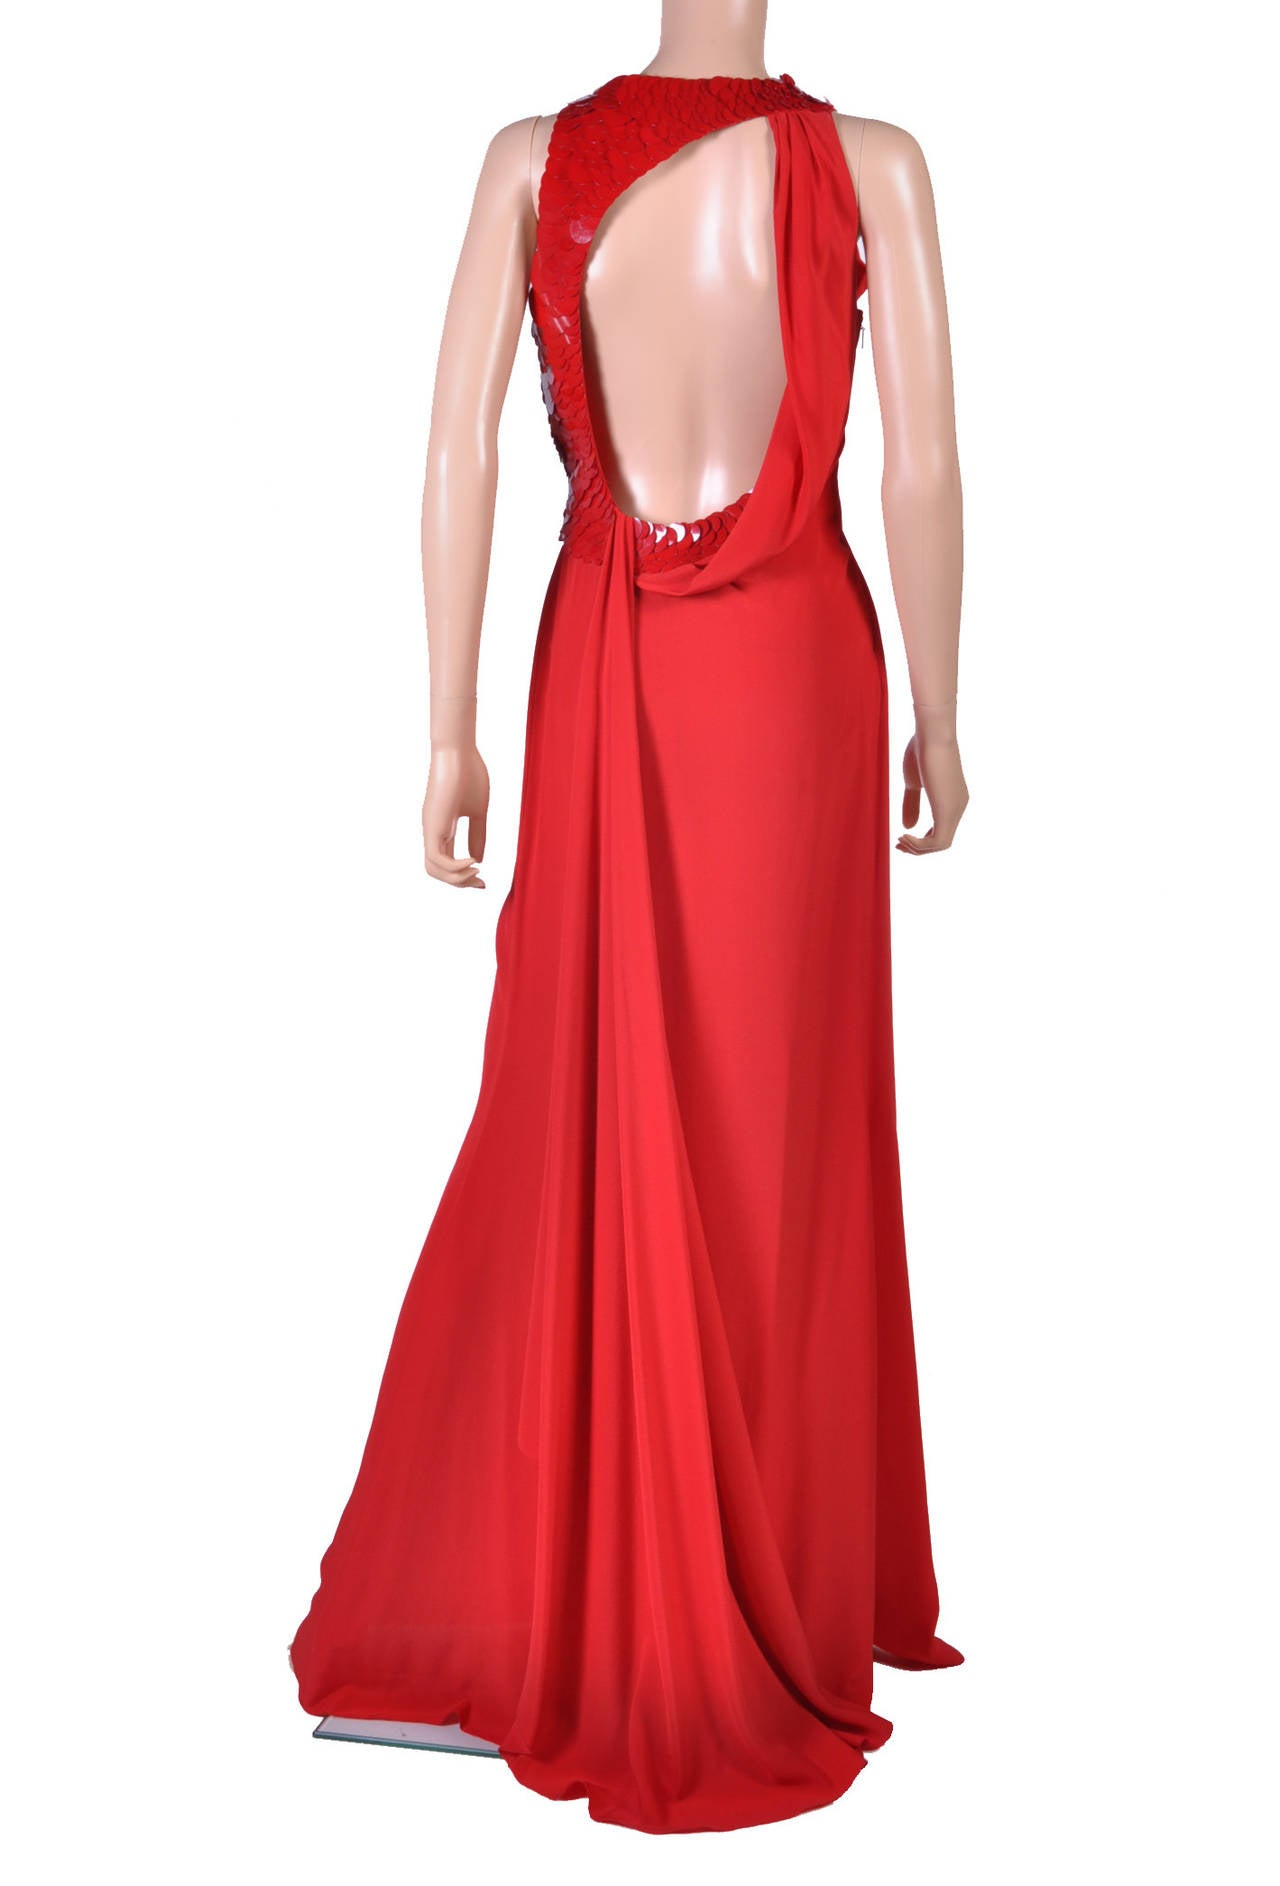 VERSACE Embellished Red Silk Gown on Emmy's list of the most iconic! 6